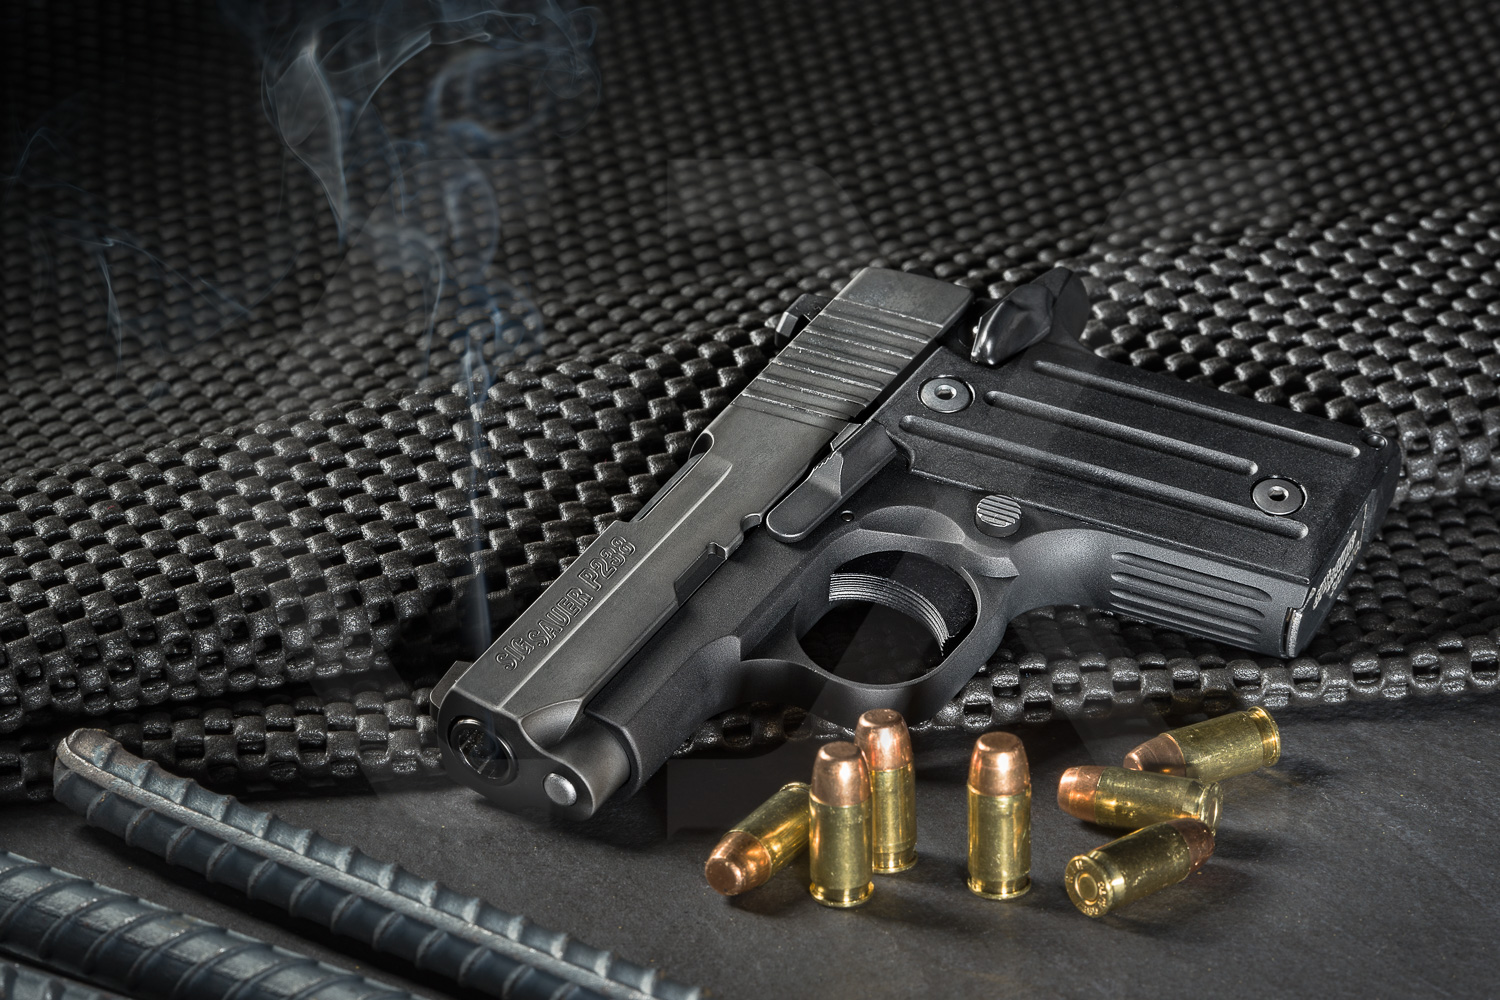 Sig Sauer P238 smoking gun with ammo